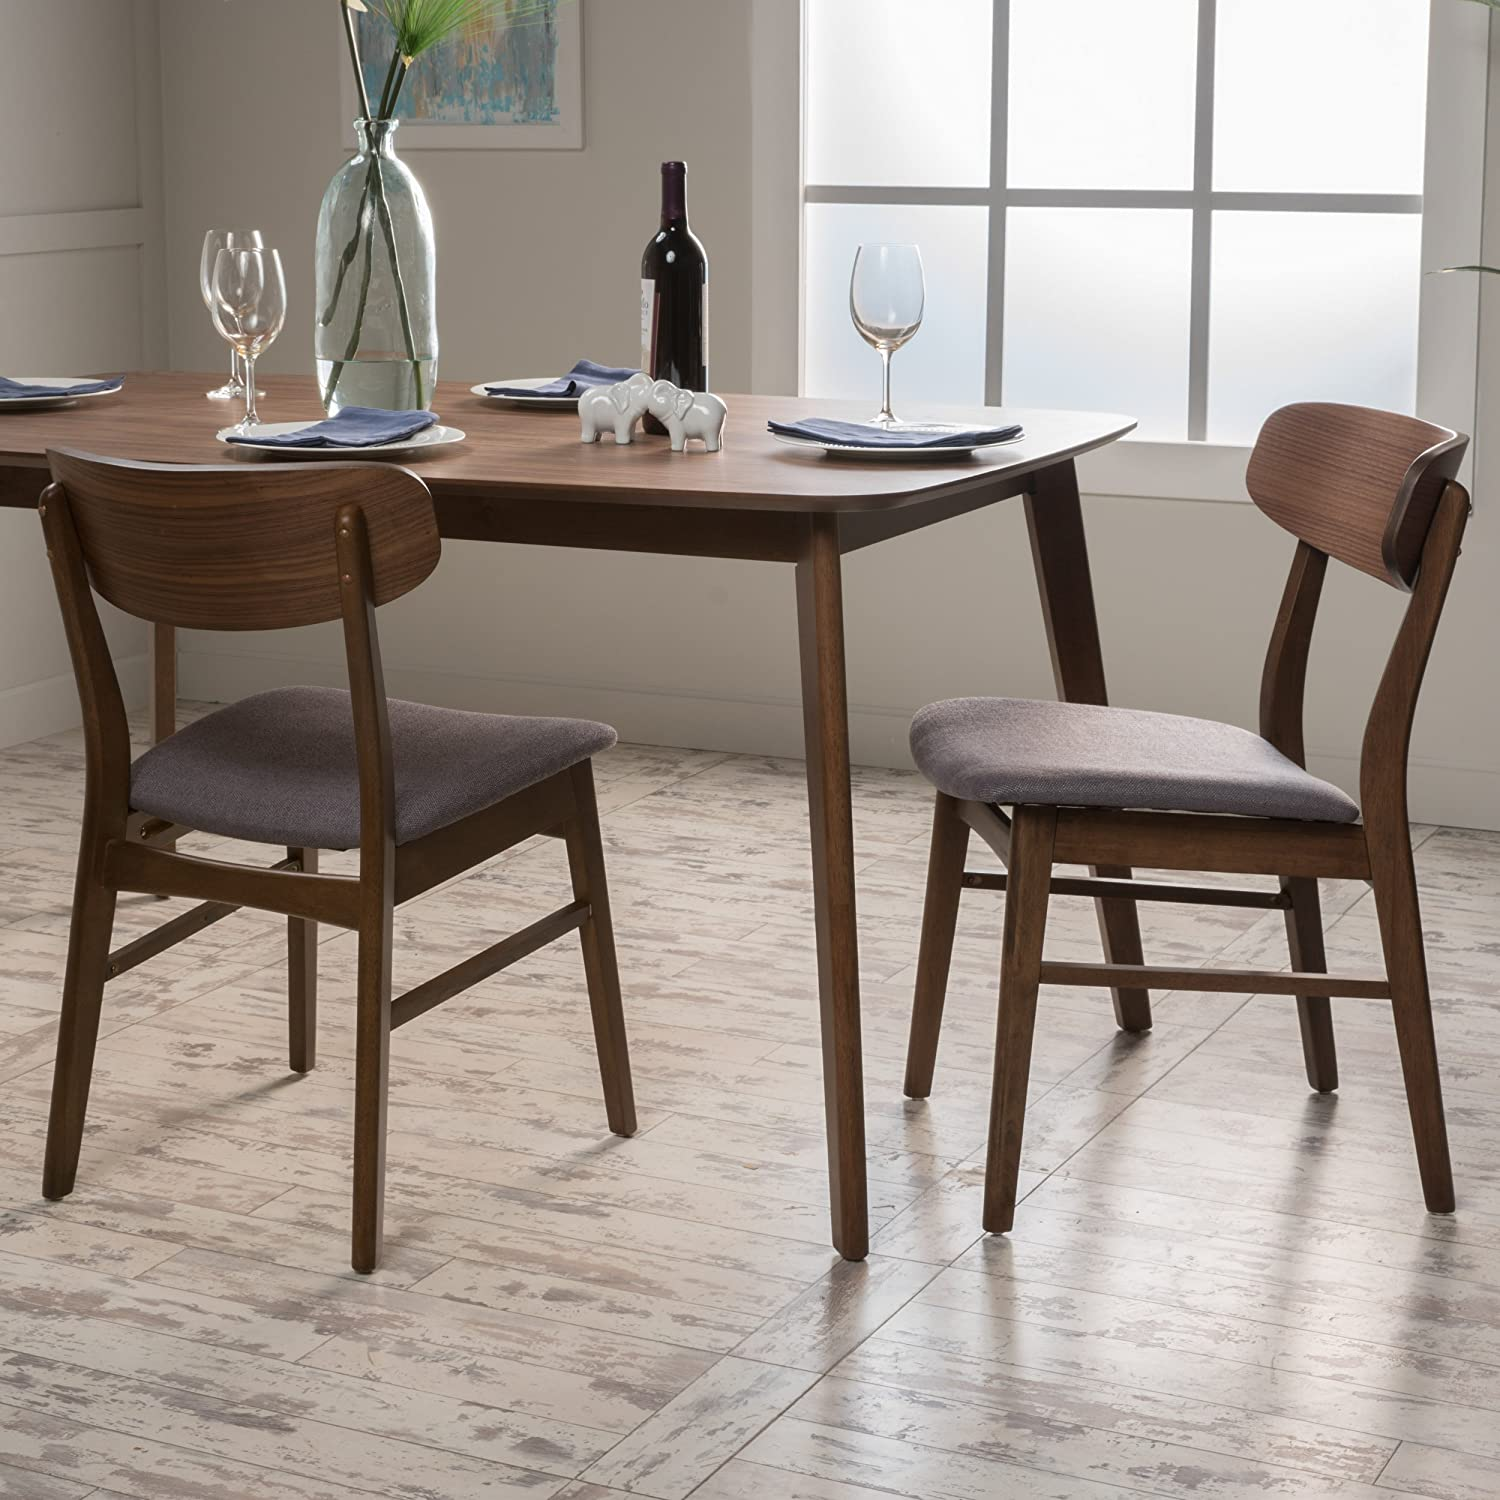 Christopher Knight Home 298990 Lucious Fabric/Walnut Finish Dining Chair (Set of 2), Dark Grey